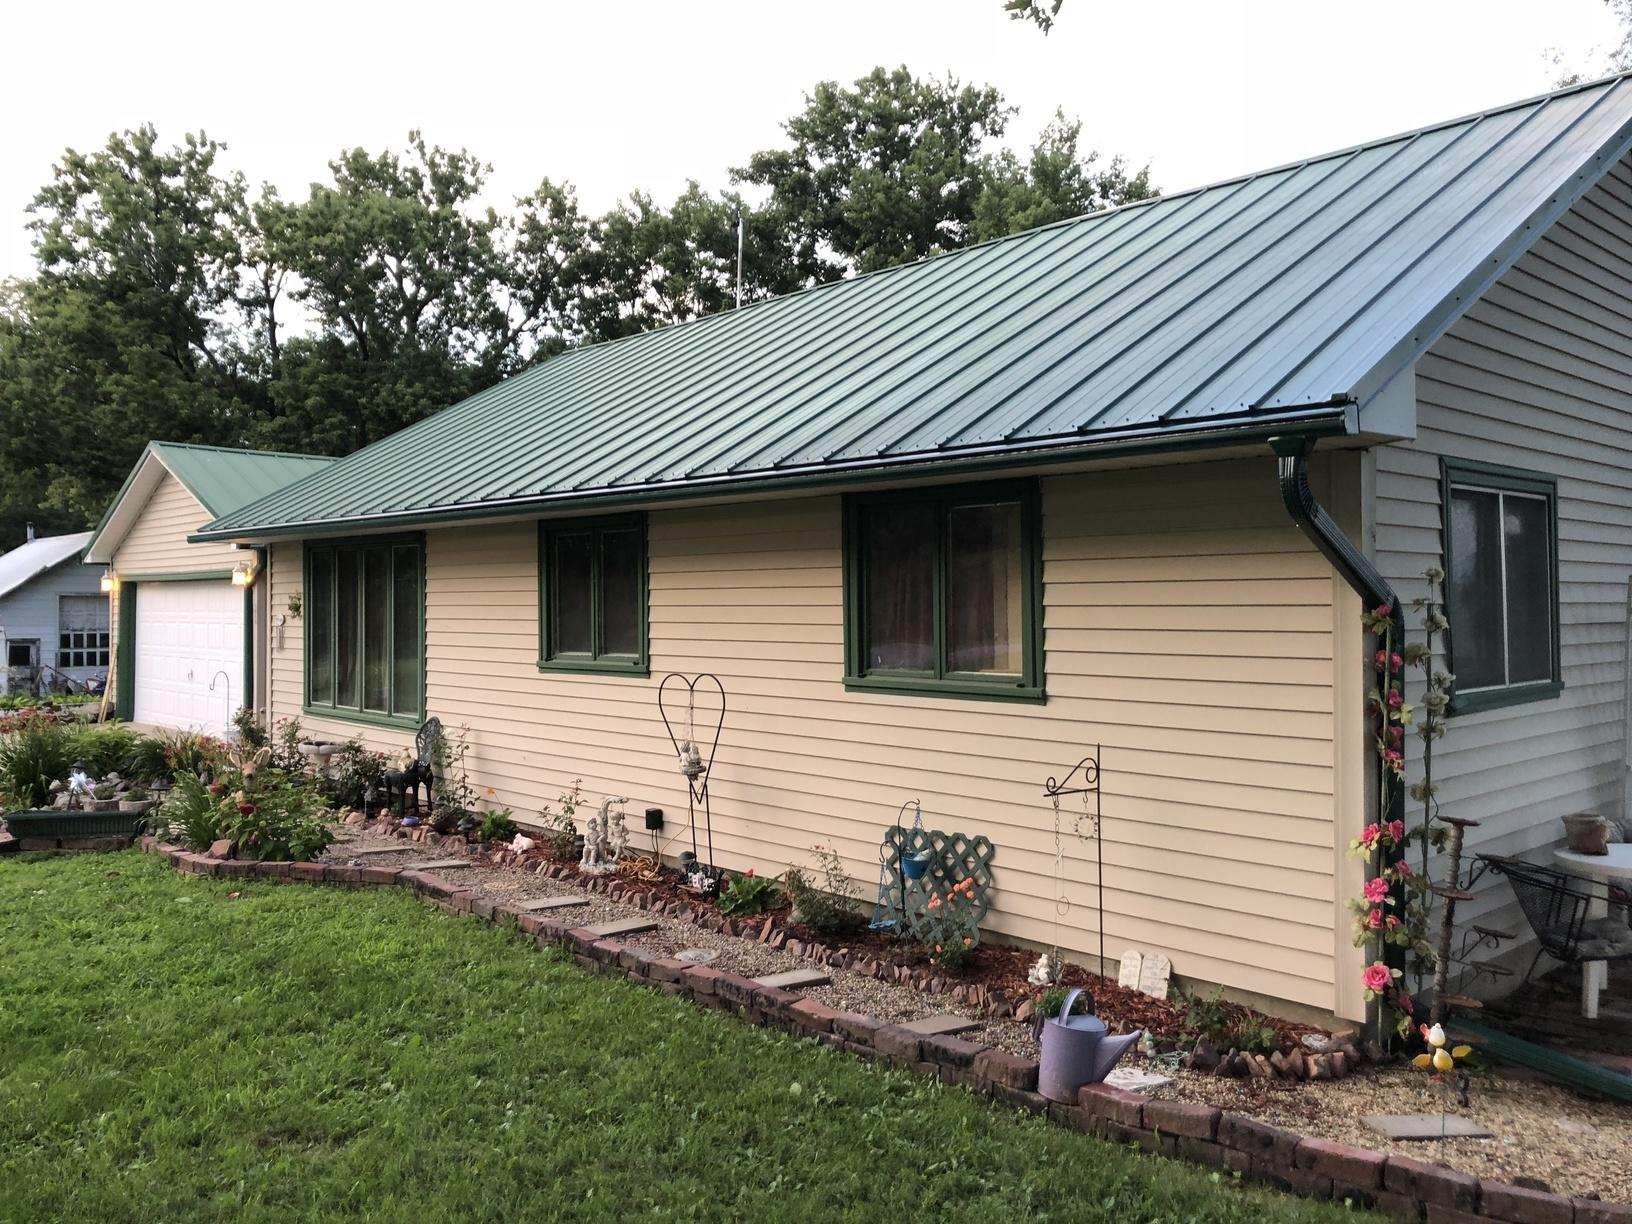 Gutters Installed on Home with a Metal Roof in Tabor, IA - After Photo